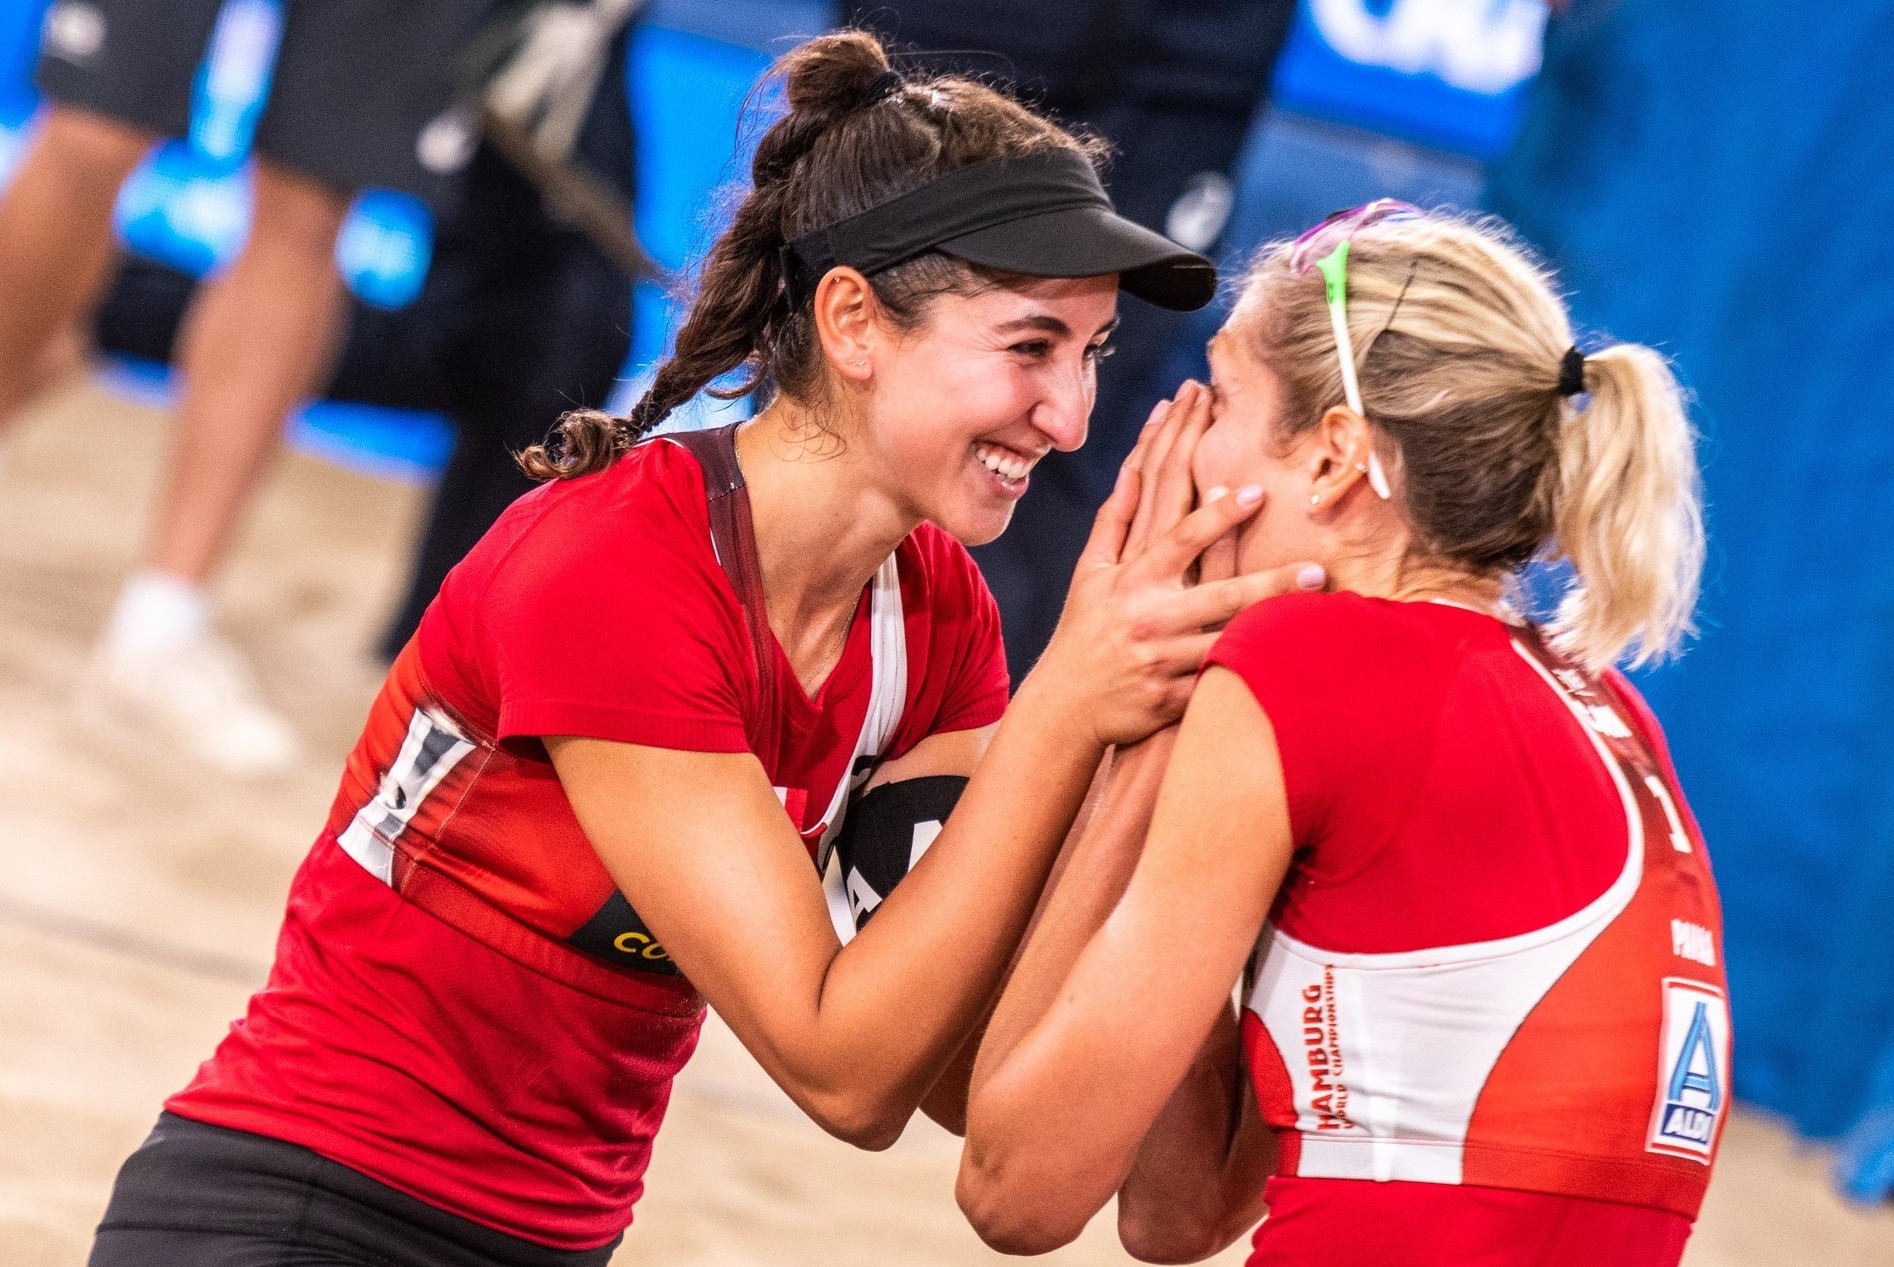 Canada's Melissa Humana-Parades and Sarah Pavan secured the women's title at the Beach Volleyball World Championships in Hamburg today ©FIVB